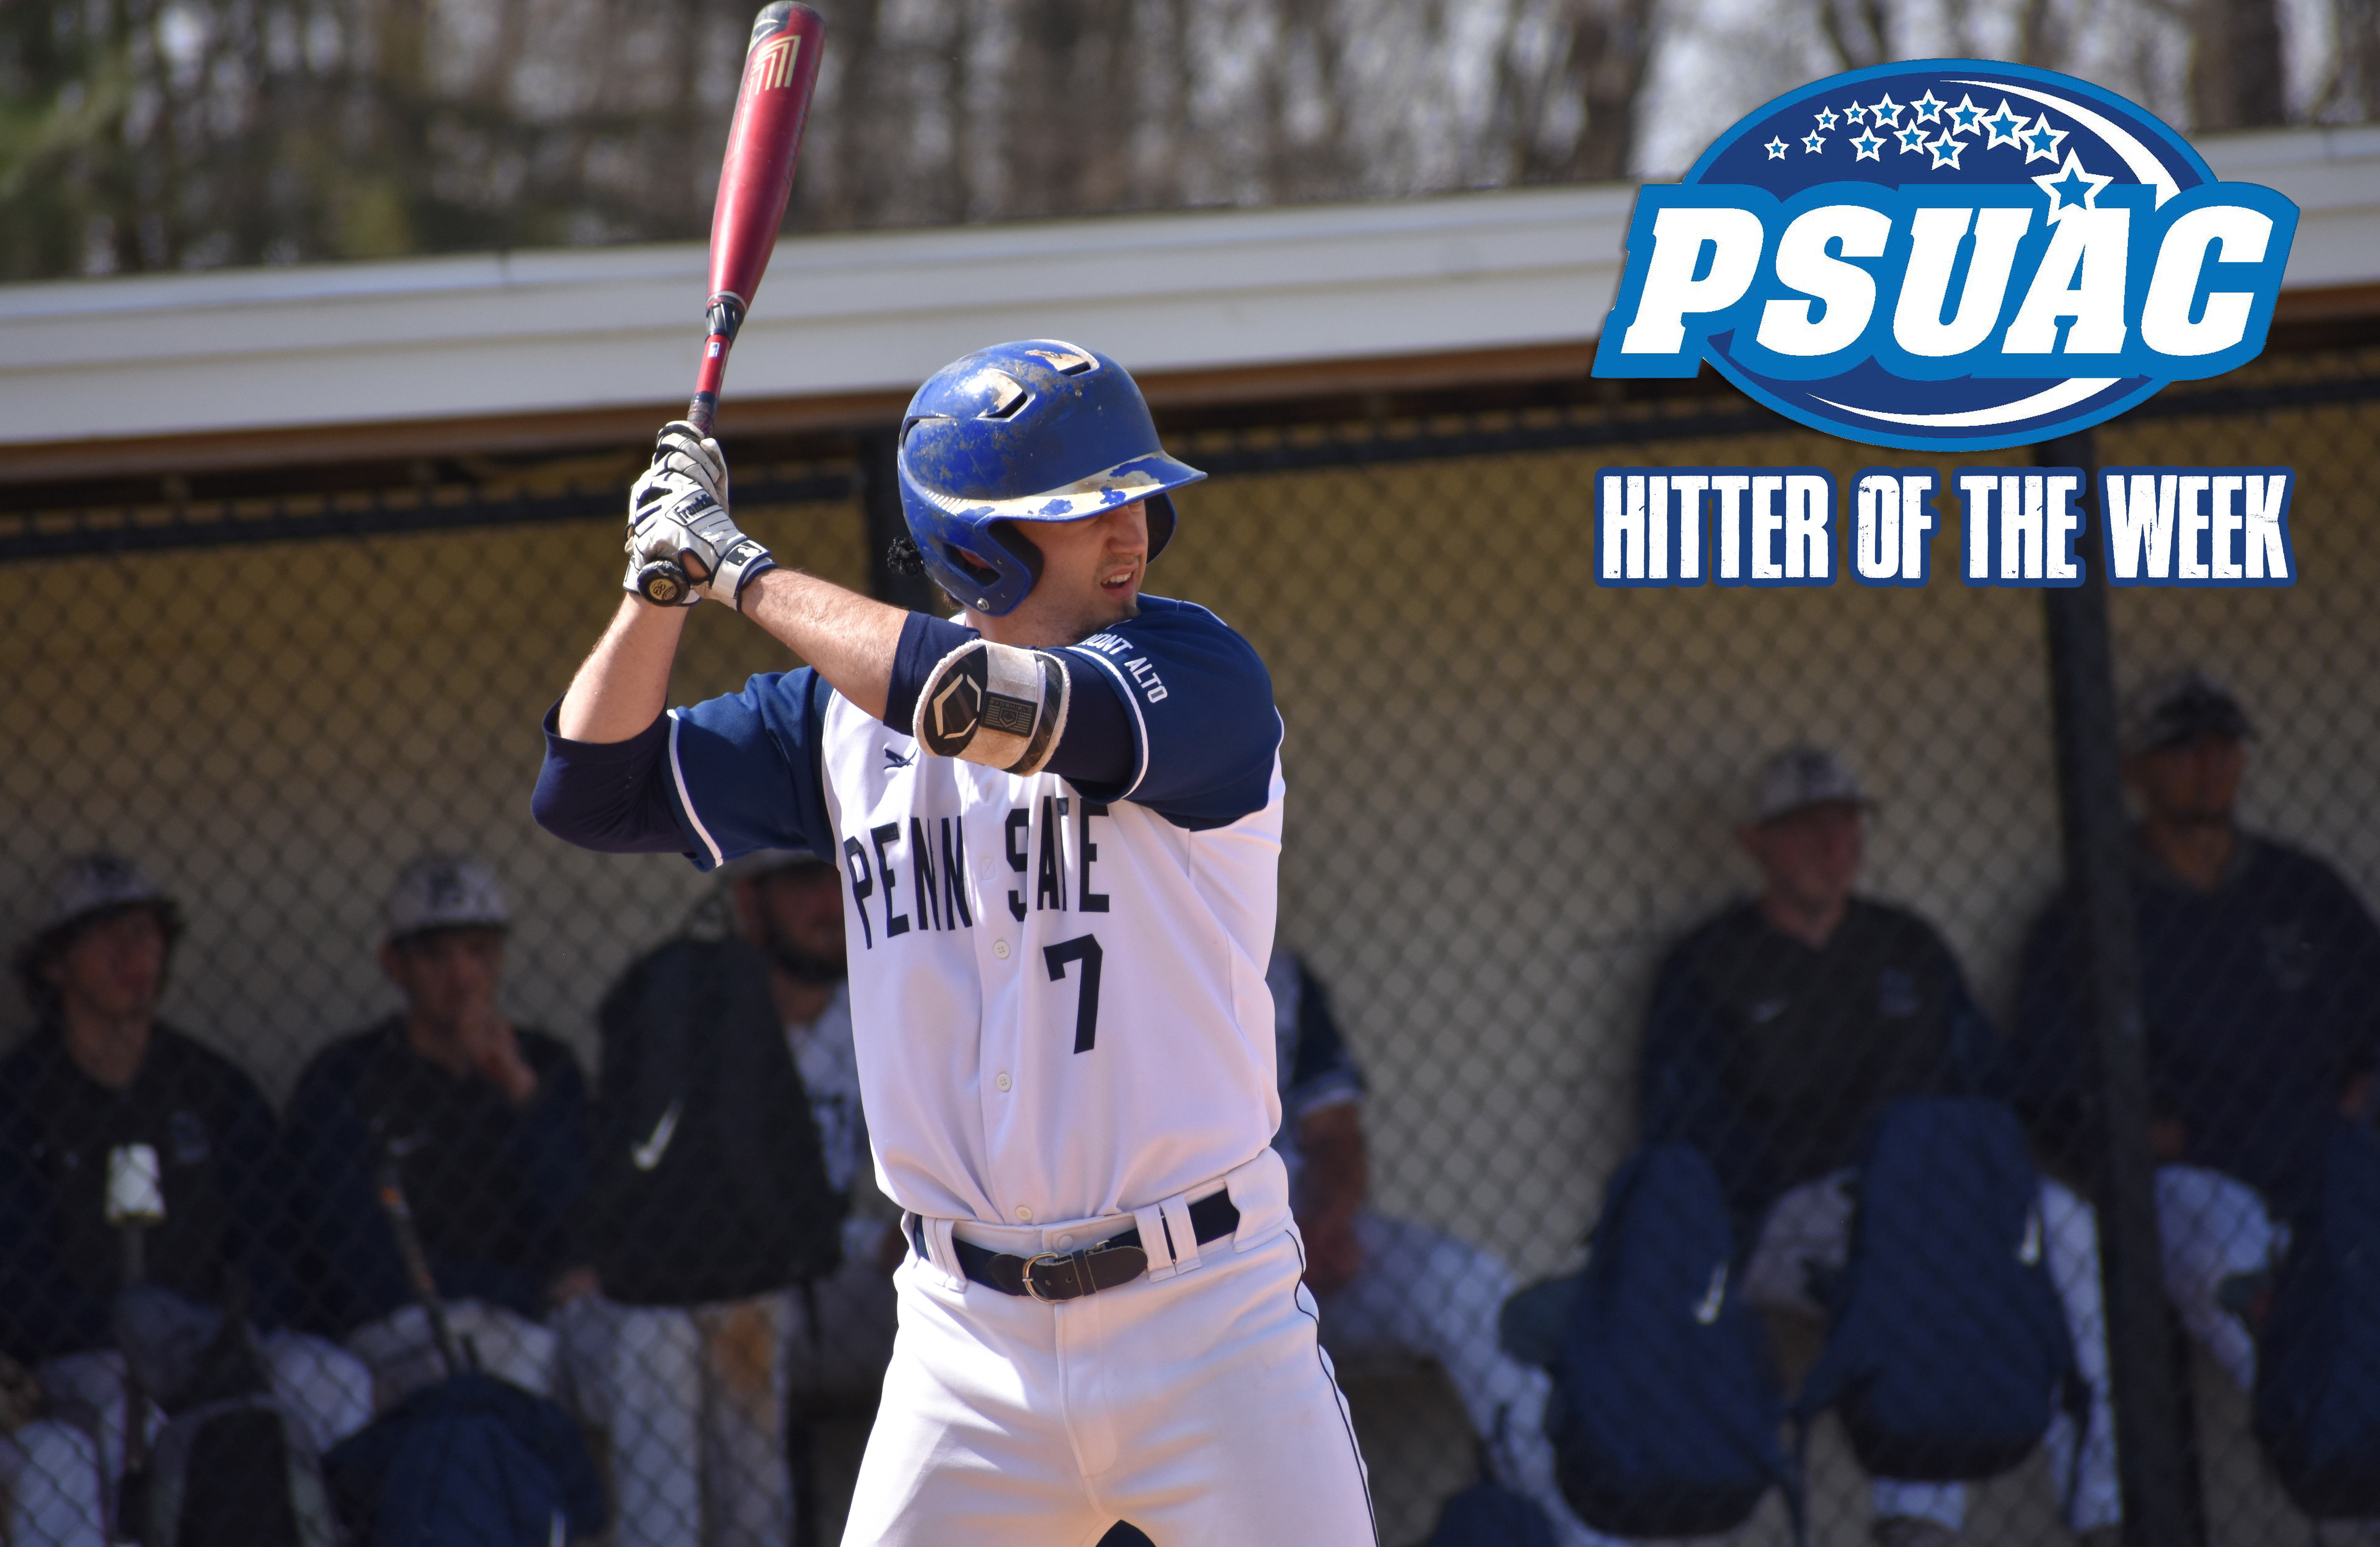 Younker PSUAC Hitter of the Week